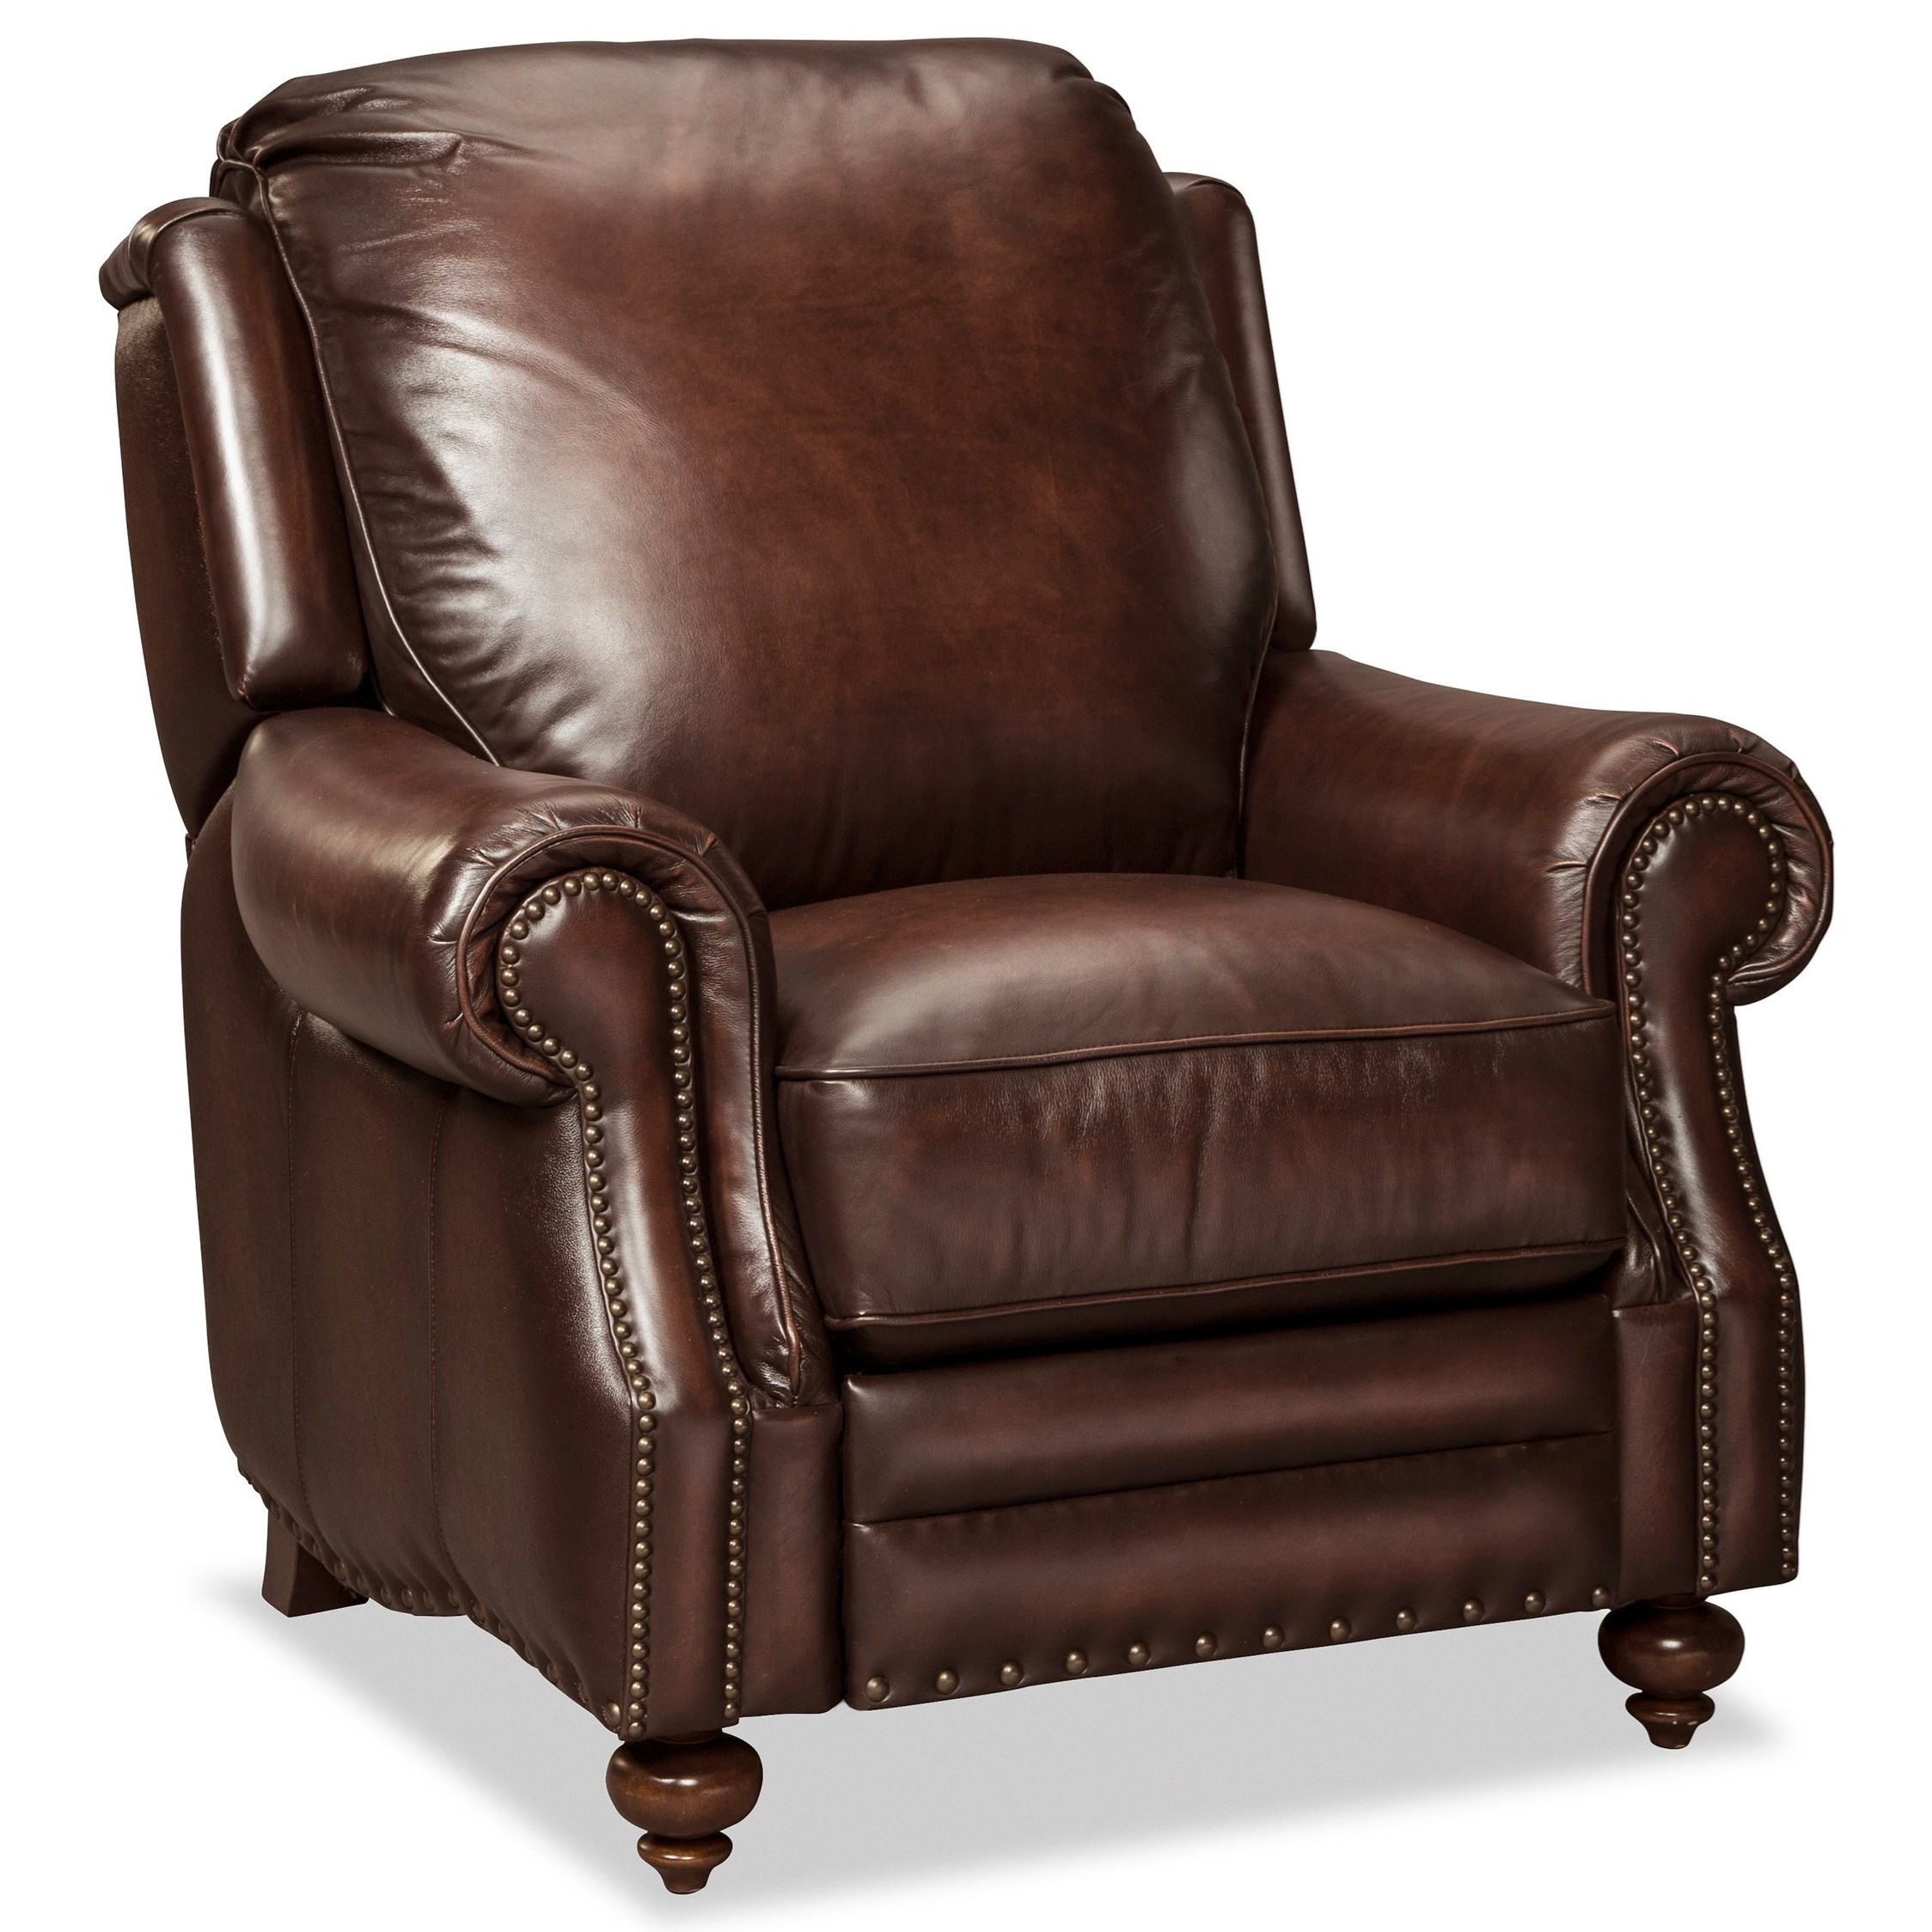 Craftmaster Traditional Leather Recliner By Craftmaster